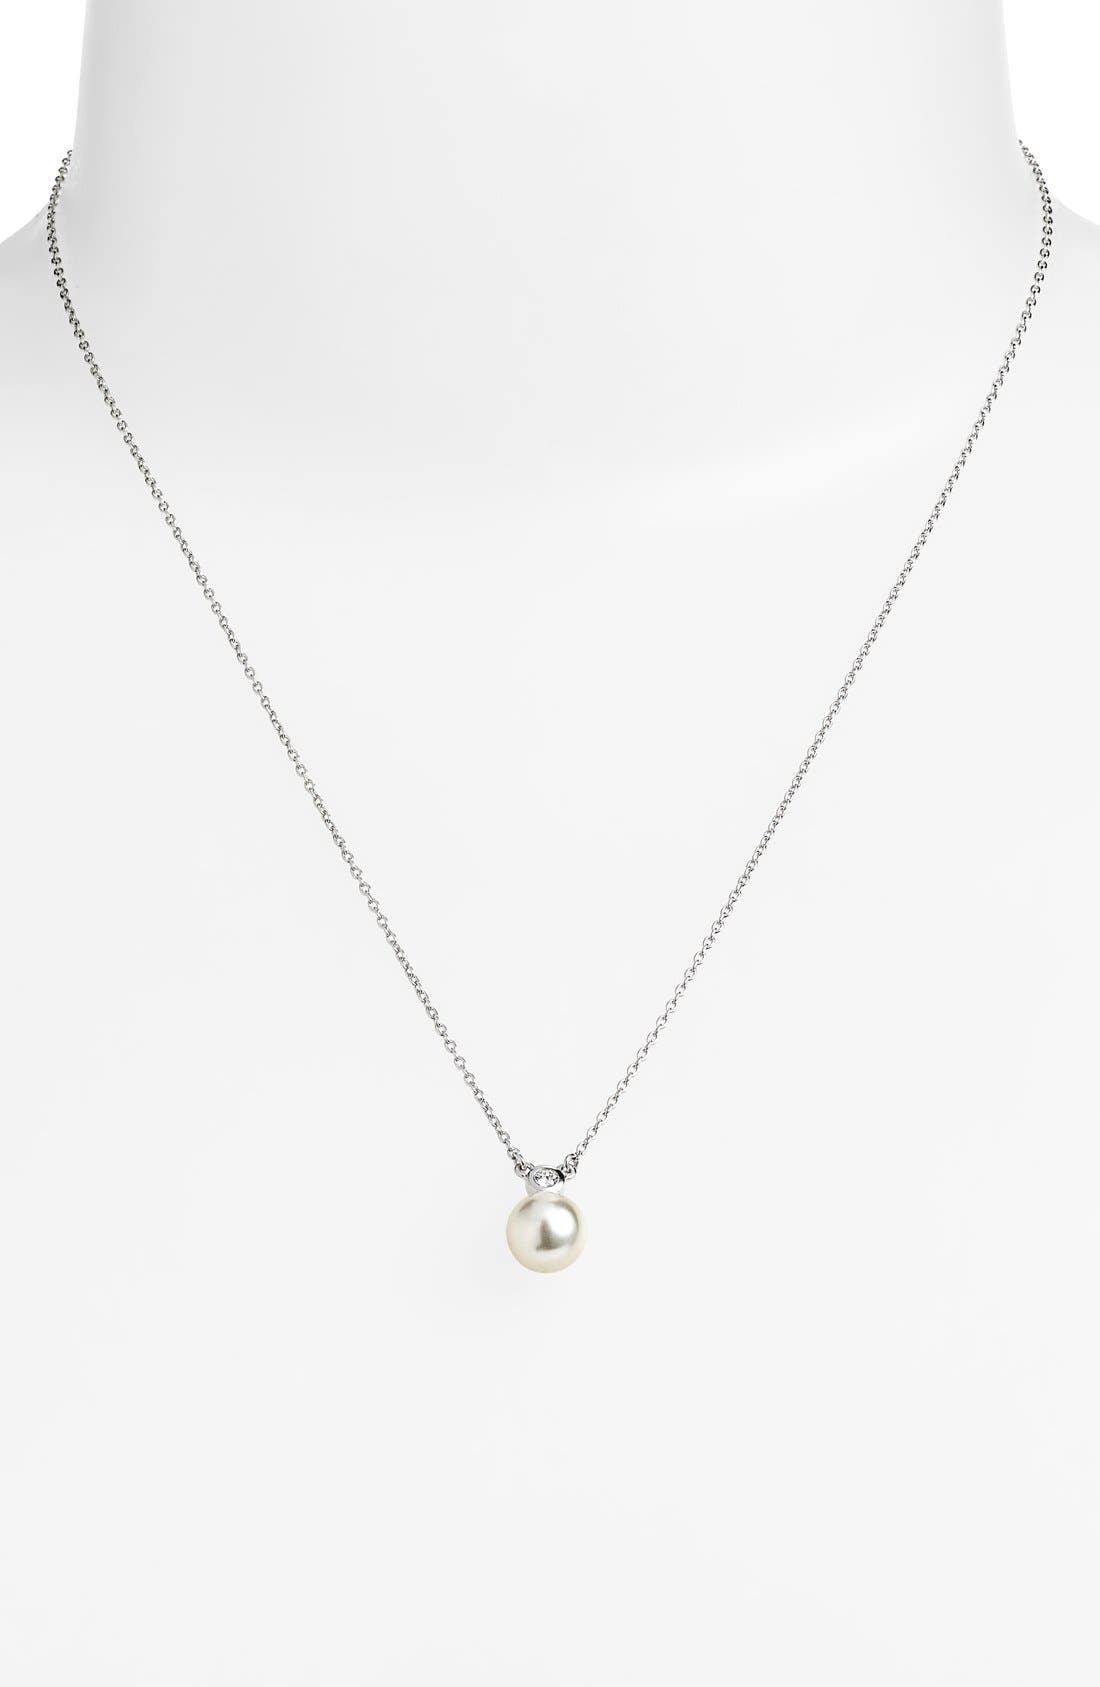 Alternate Image 1 Selected - Judith Jack 'Pearl Romance' Faux Pearl Pendant Necklace